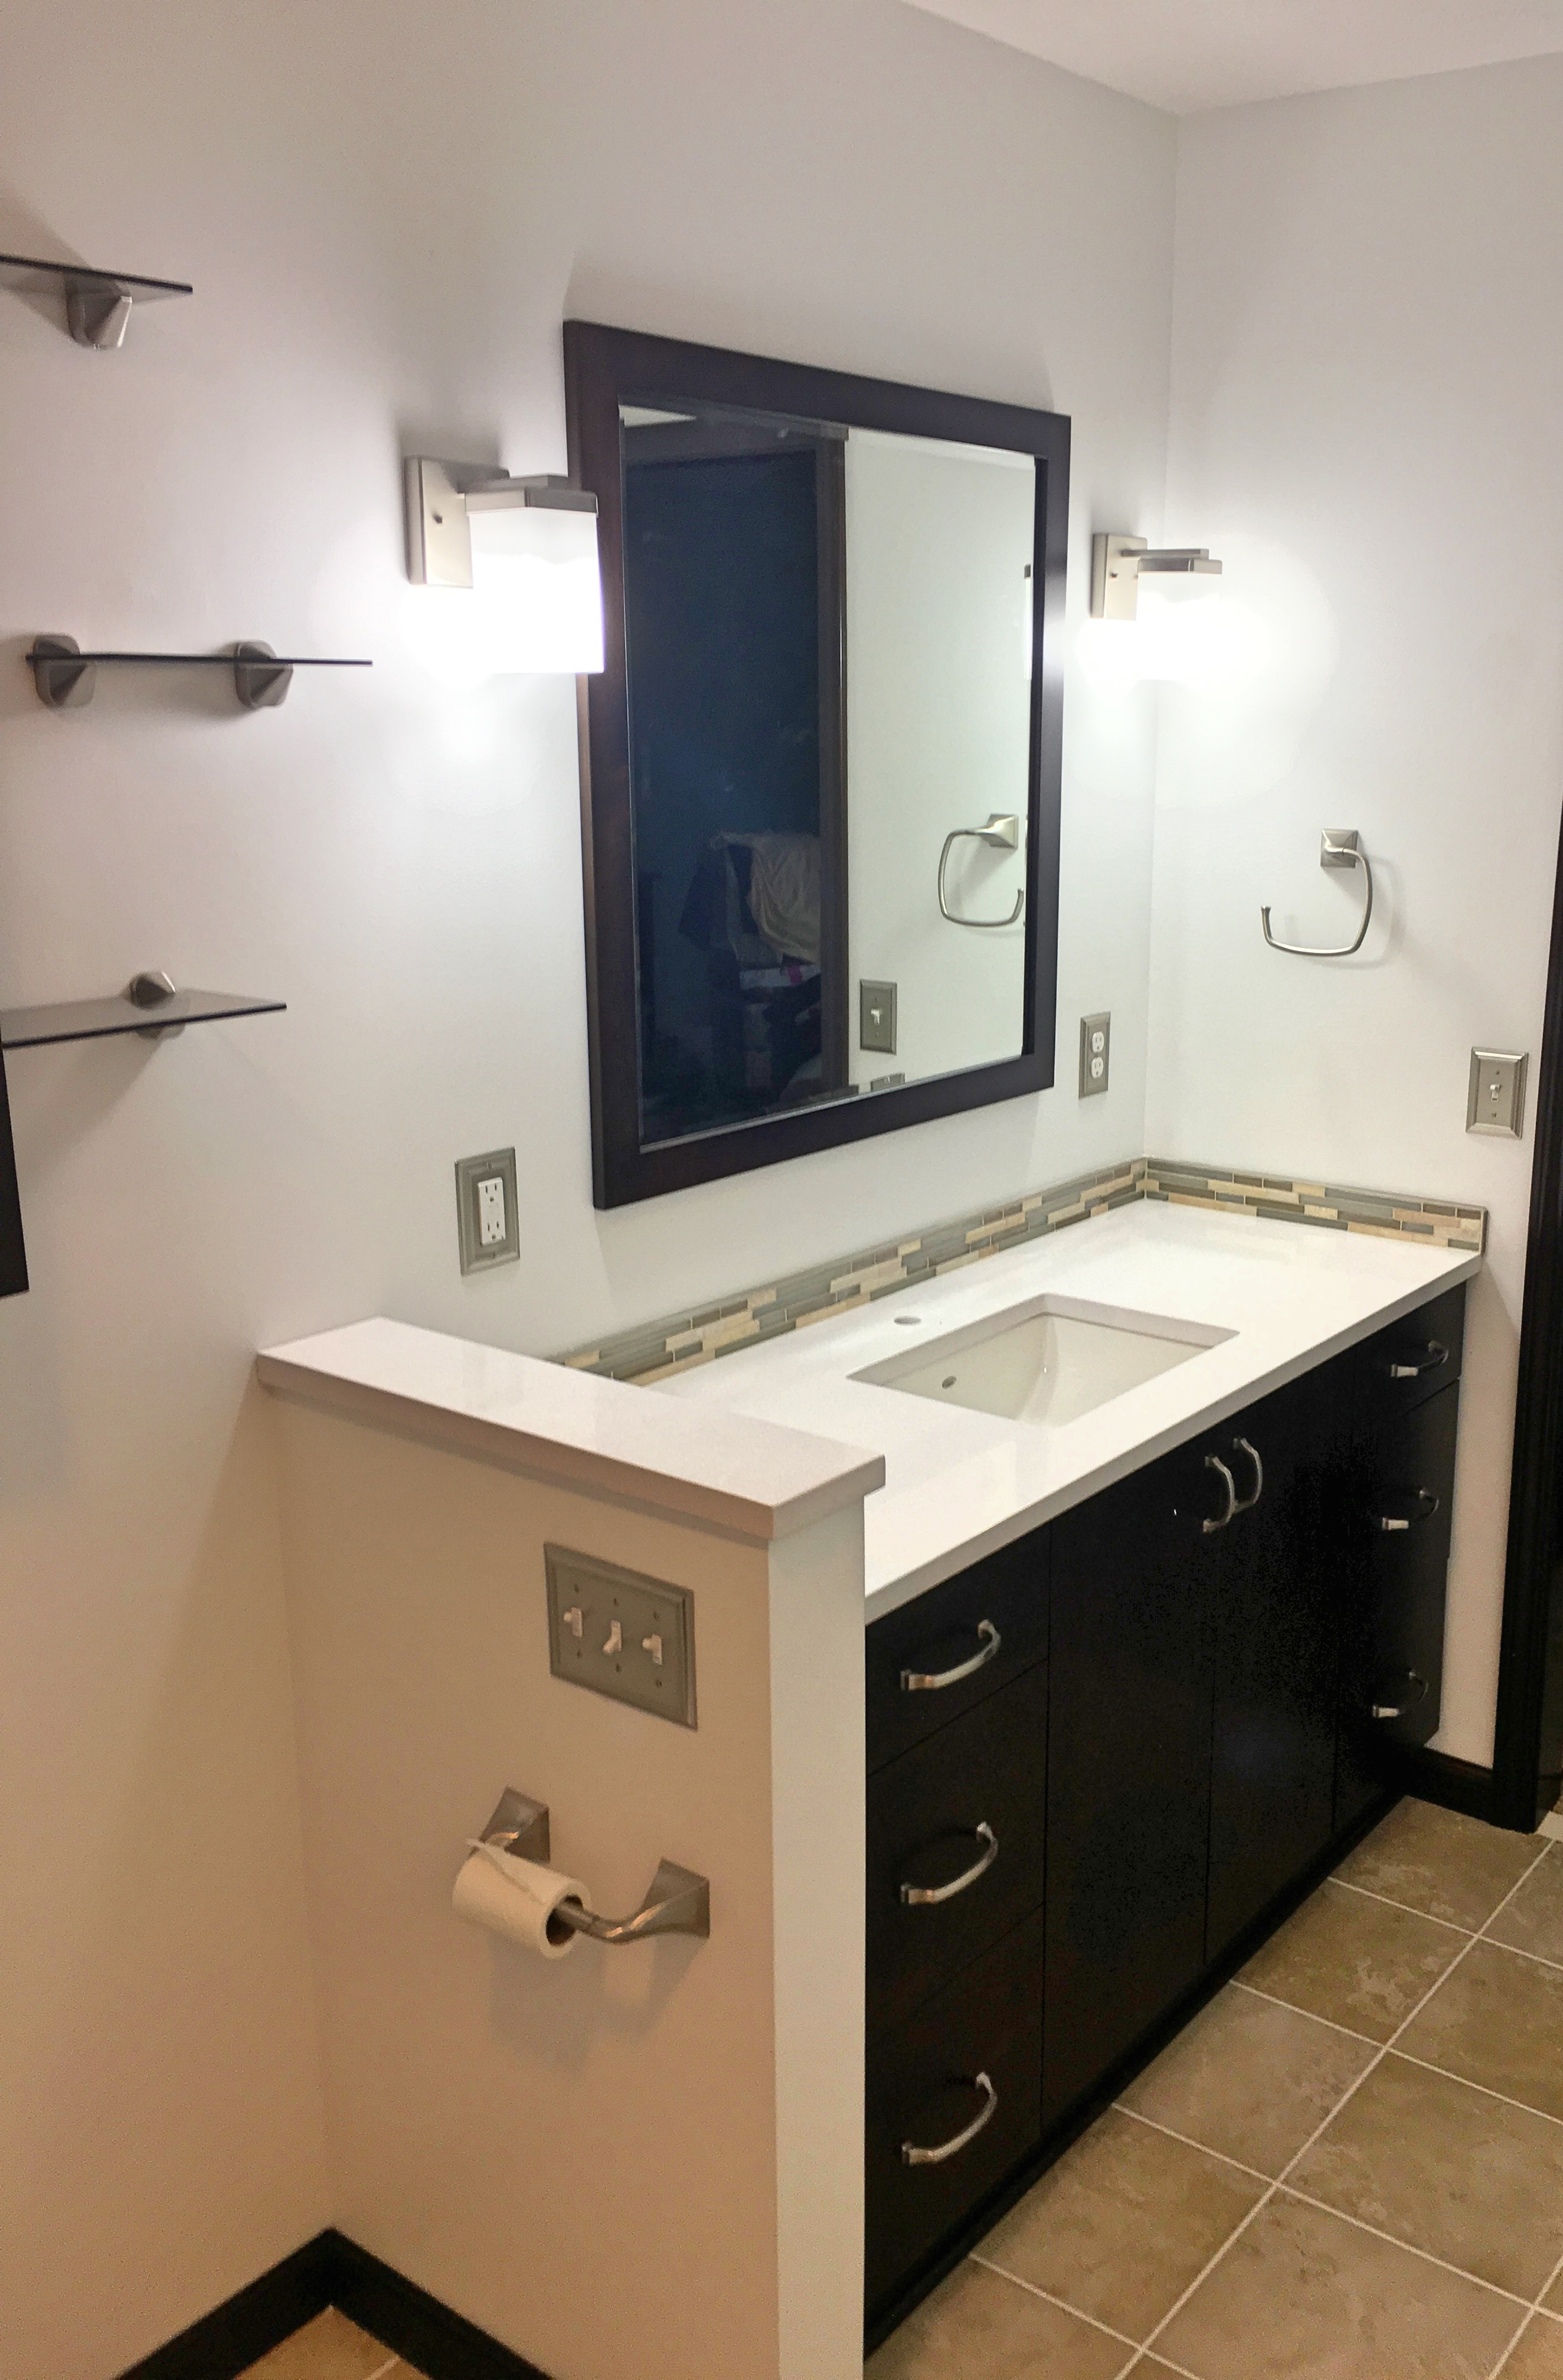 Full Bathroom Remodel Stow OH Quality Design Renovations LLC - How much is a full bathroom remodel